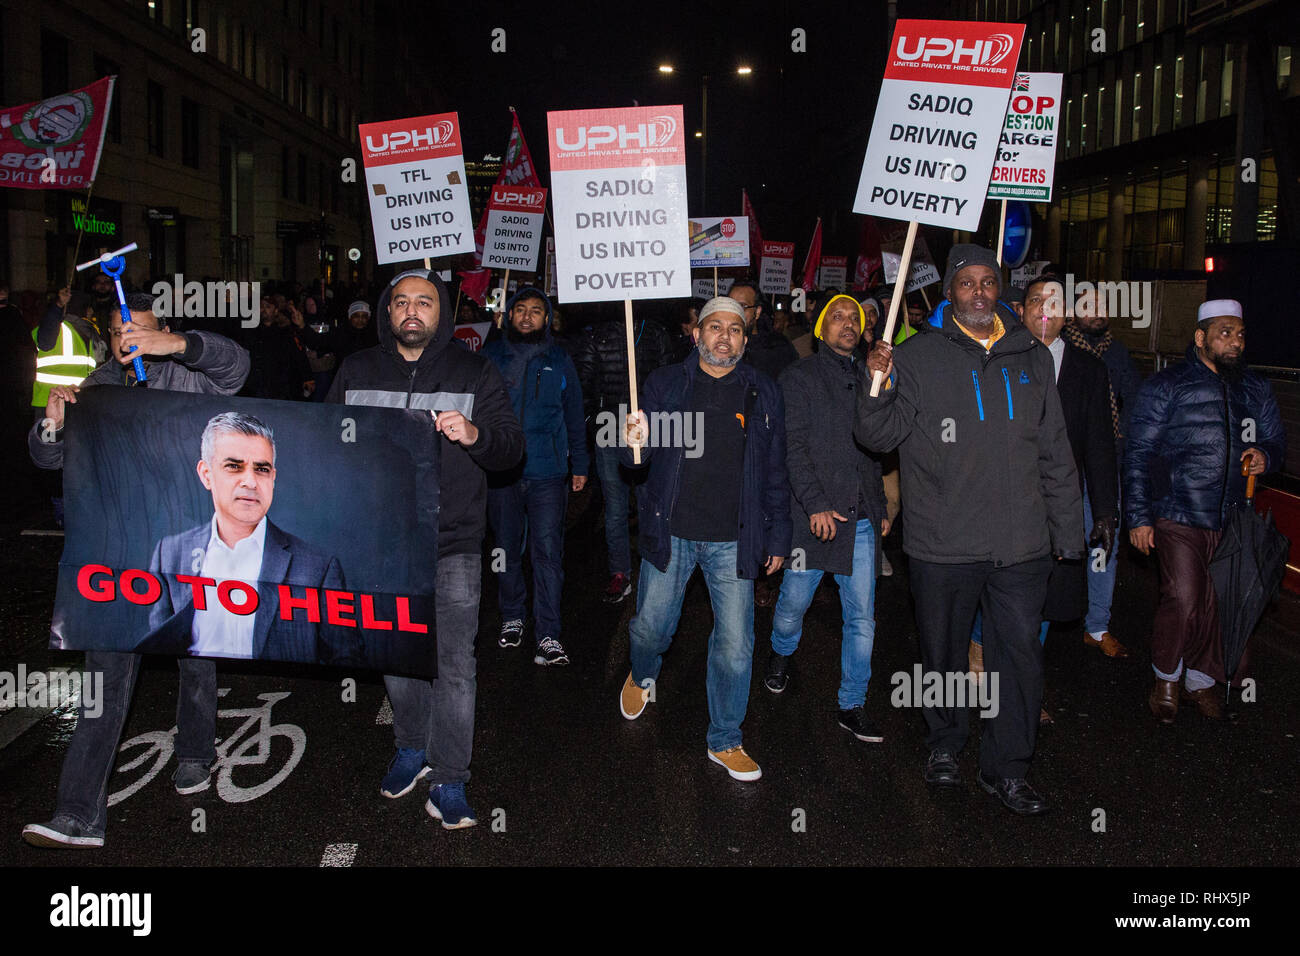 London, UK. 4th February, 2019. Hundreds of minicab drivers block London Bridge as part of a protest organised by the United Private Hire Drivers (UPHD) branch of the Independent Workers Union of Great Britain's (IWGB)  following the introduction in December of congestion charges for minicabs. Credit: Mark Kerrison/Alamy Live News - Stock Image